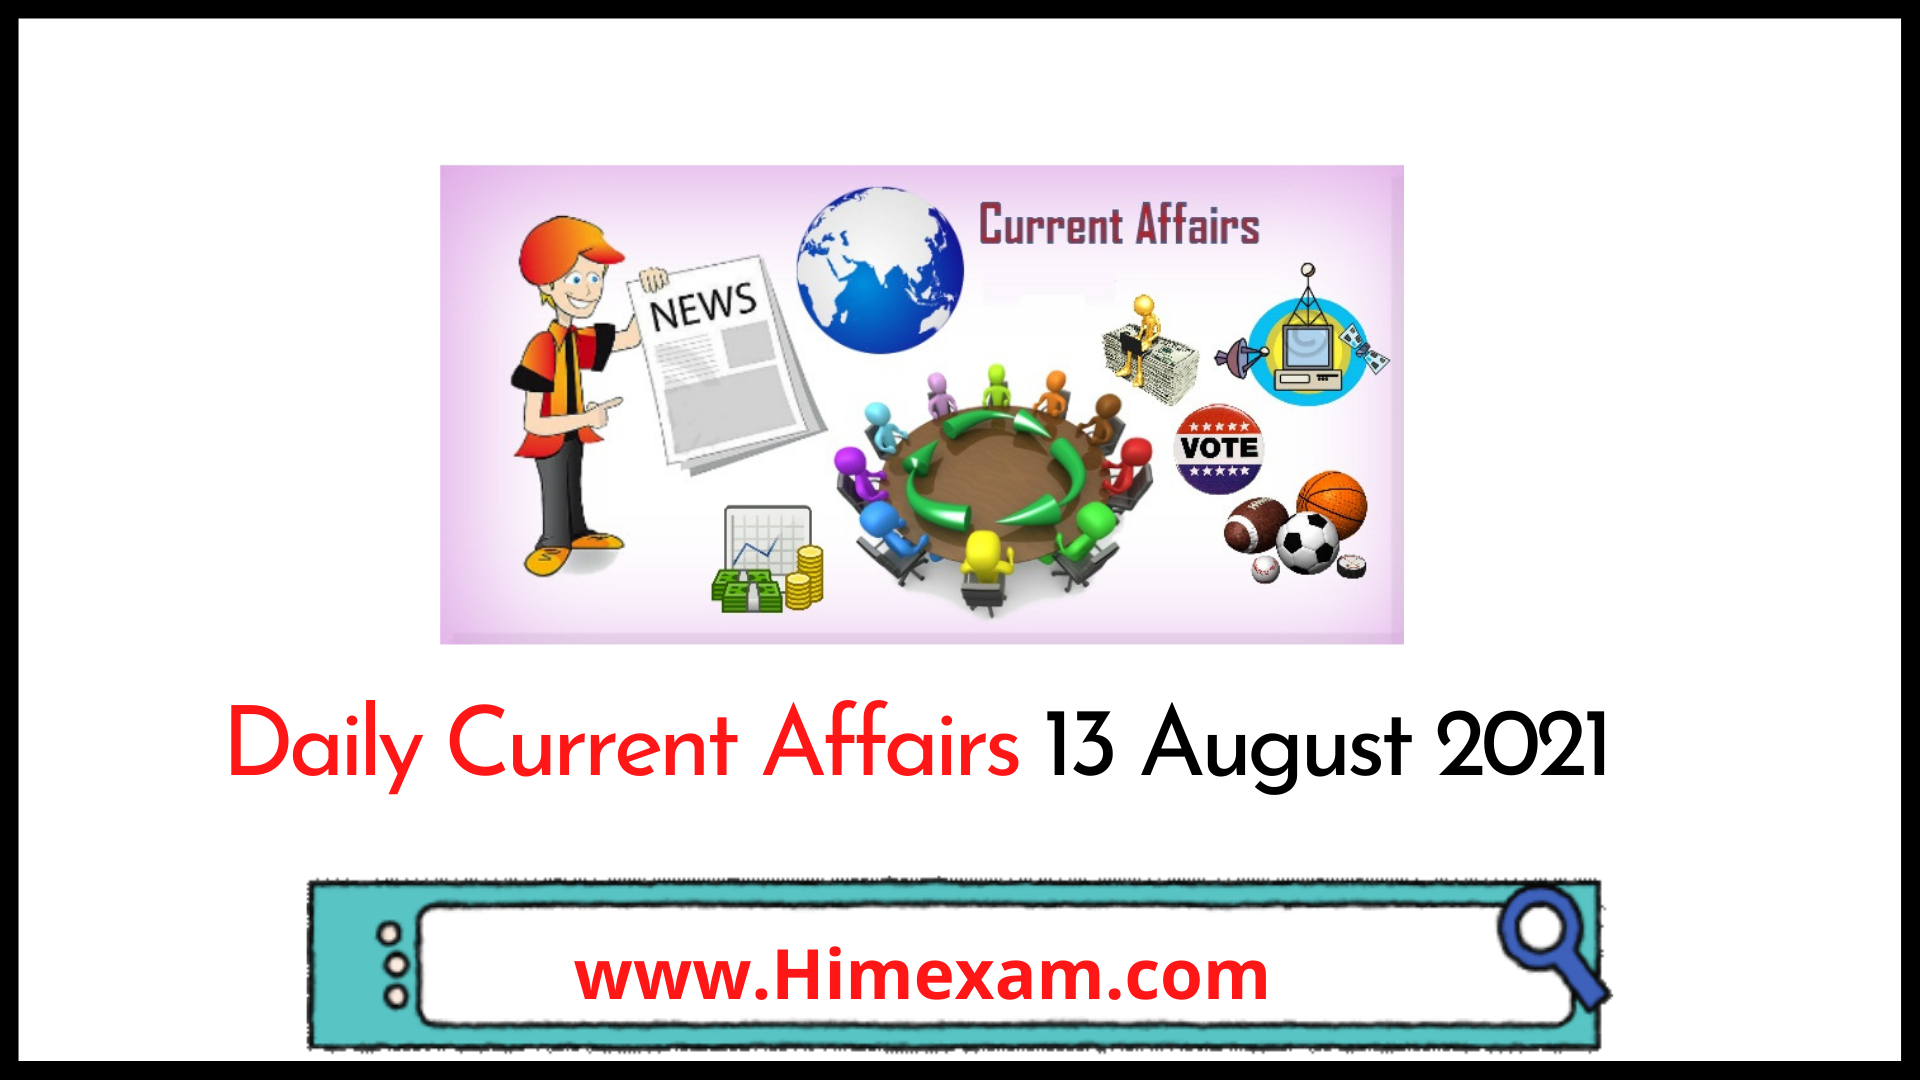 Daily Current Affairs 13 August 2021